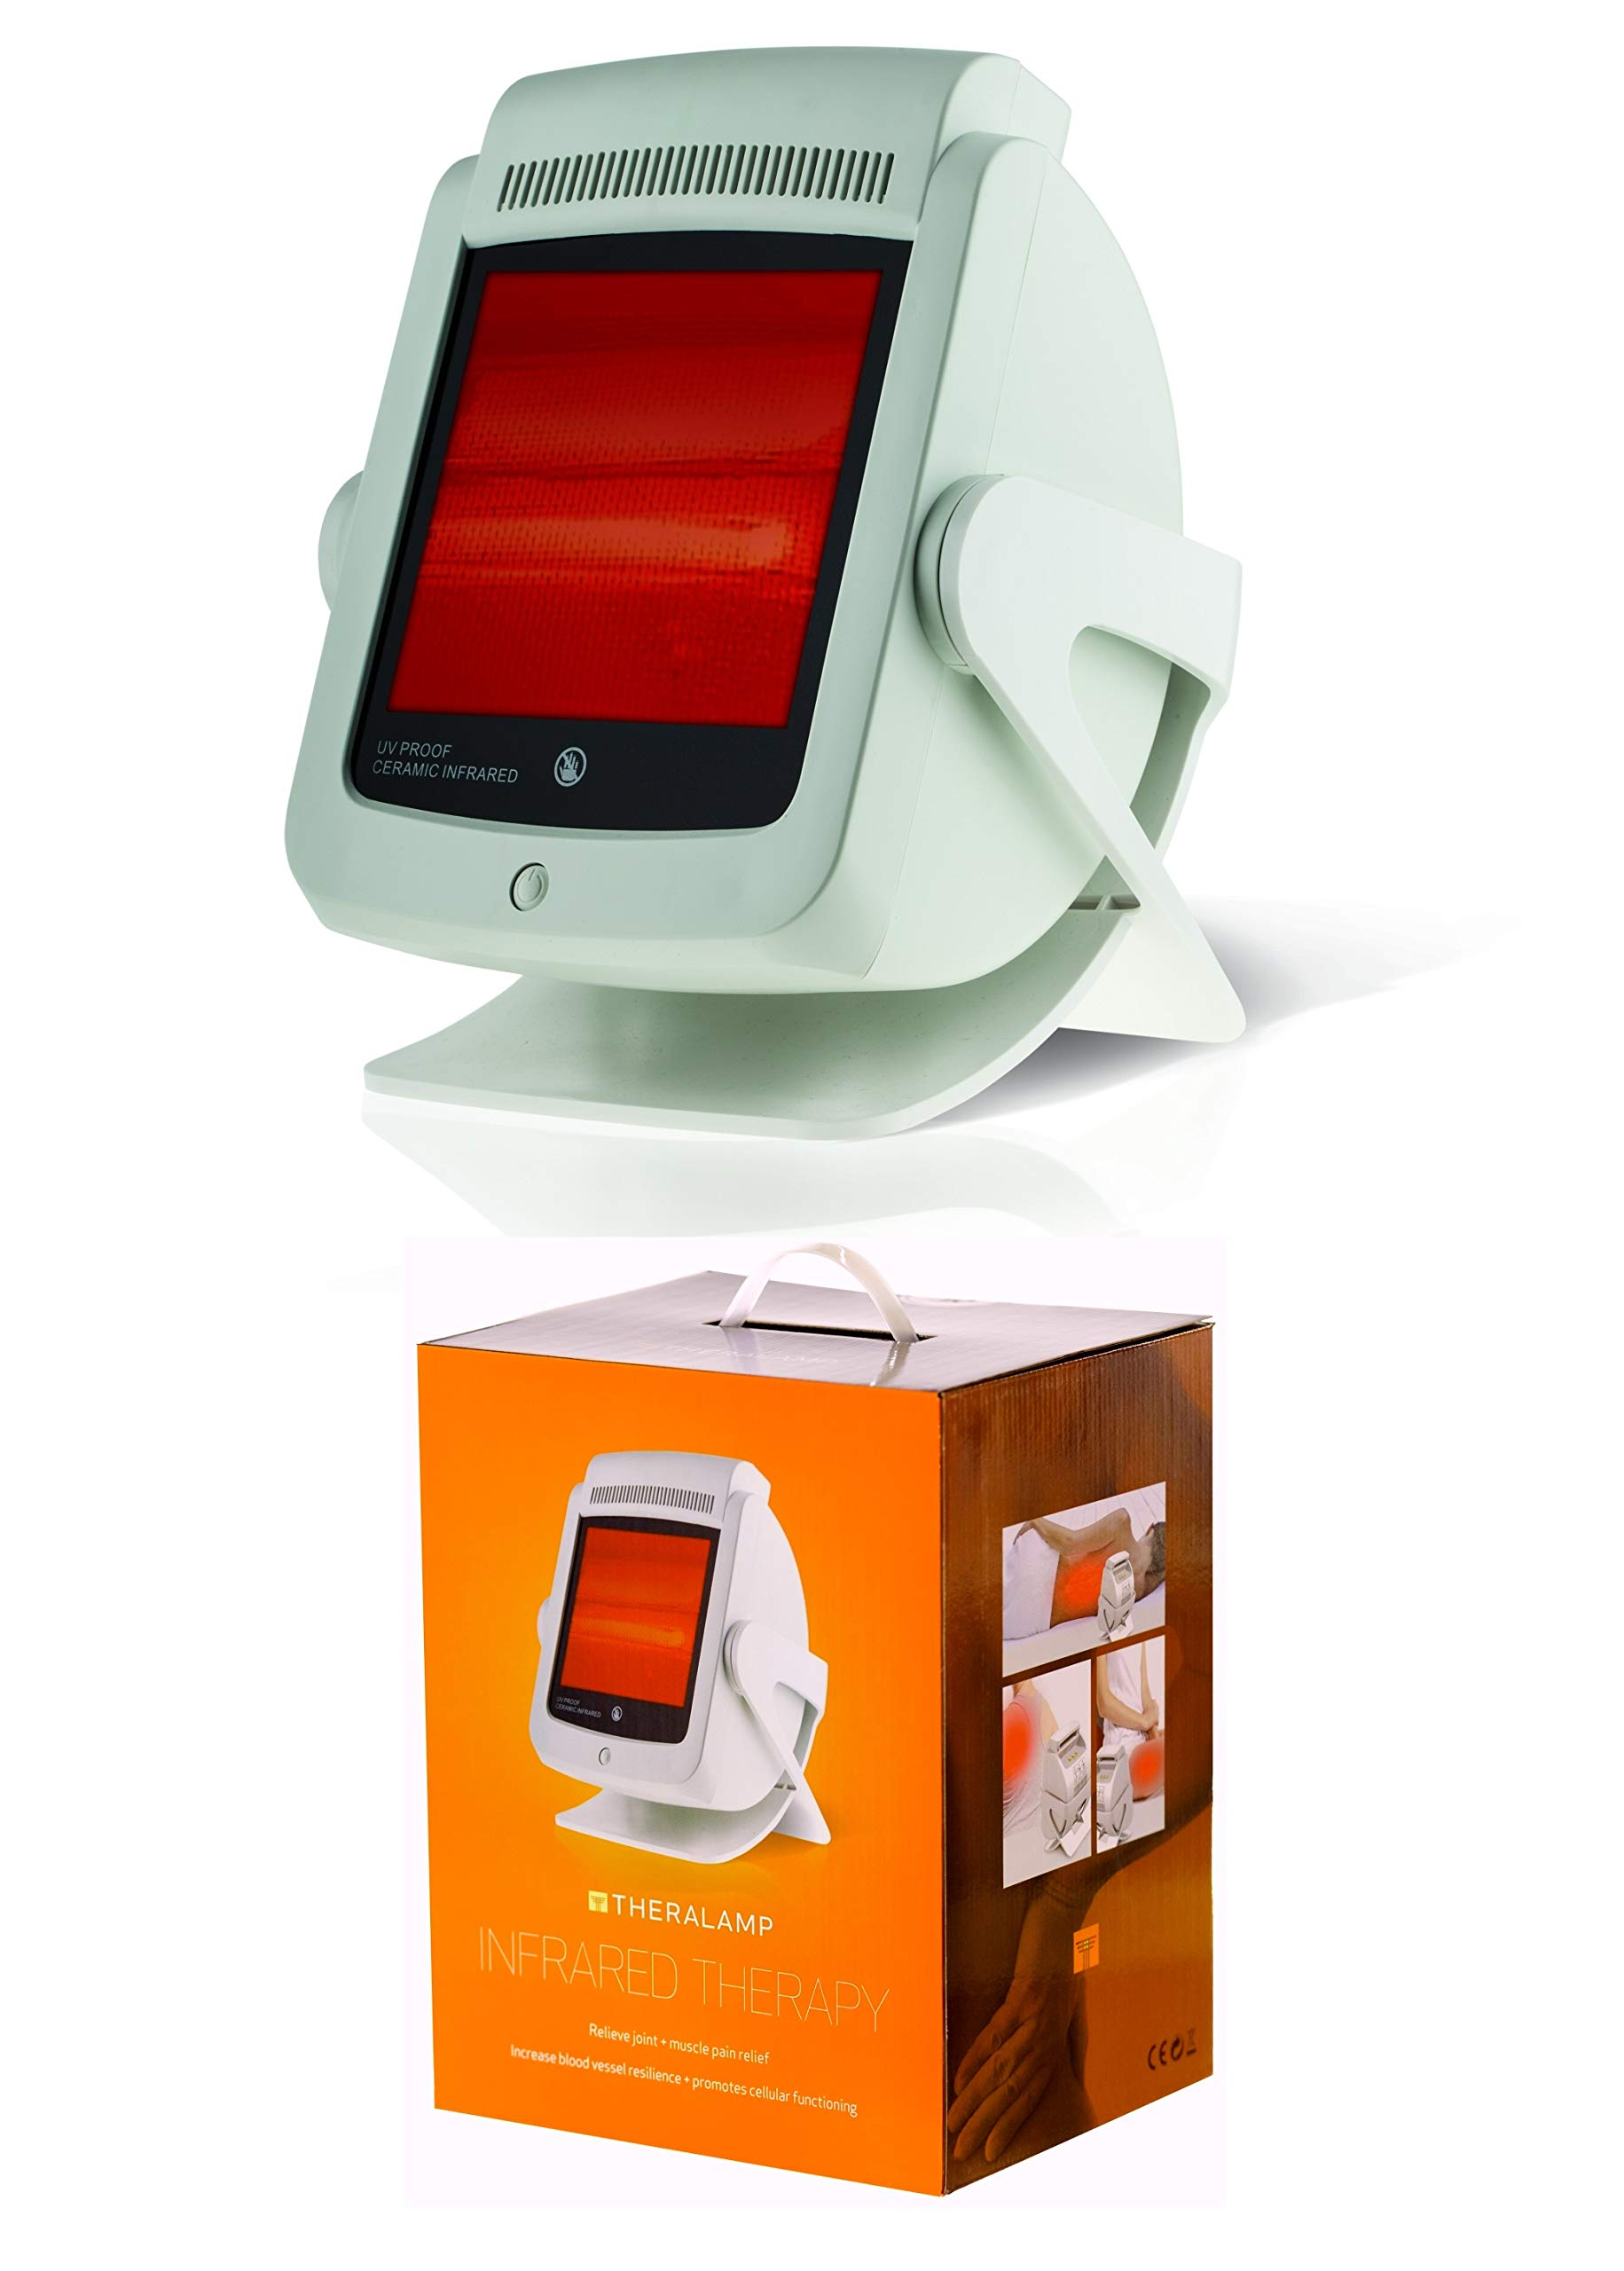 Red Light Therapy Infrared Heat Lamp by TheraLamp - Infrared Therapy for Pain in Muscles, Back Pain, Blood Circulation by M PAIN MANAGEMENT TECHNOLOGIES